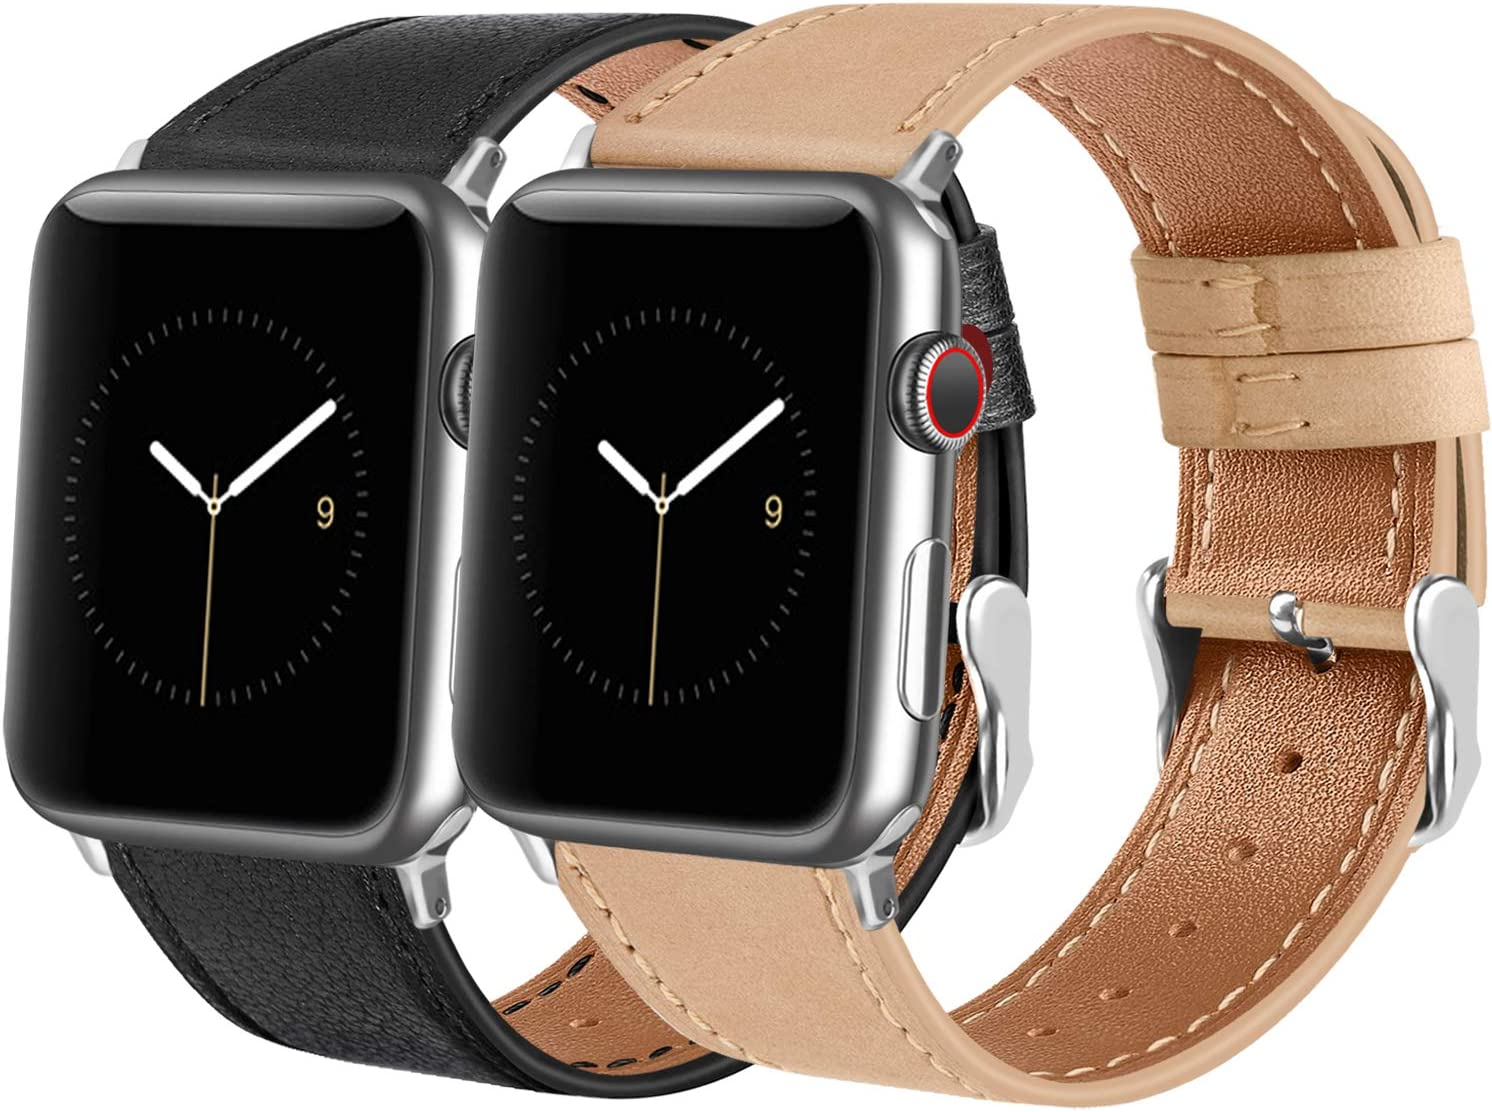 Tobfit Leather Bands Compatible with Apple Watch Band 38mm 40mm 42mm 44mm Women Men Compatible with iWatch SE Series 6 5 4 3 2 1, Black&Beige, 42mm/44mm